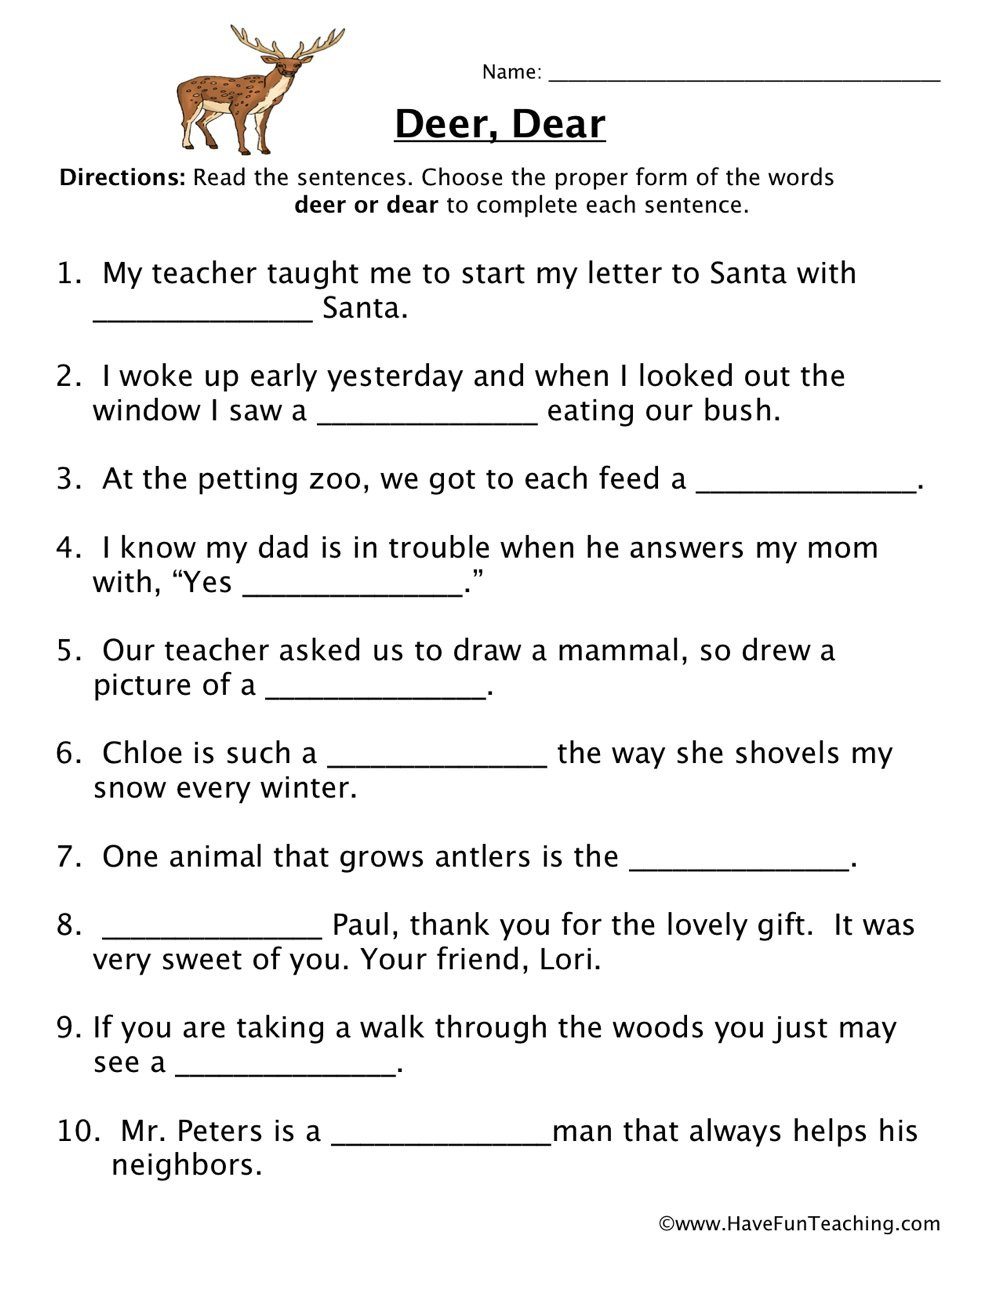 Homophones Worksheets 4th Grade Deer Dear Homophones Worksheet